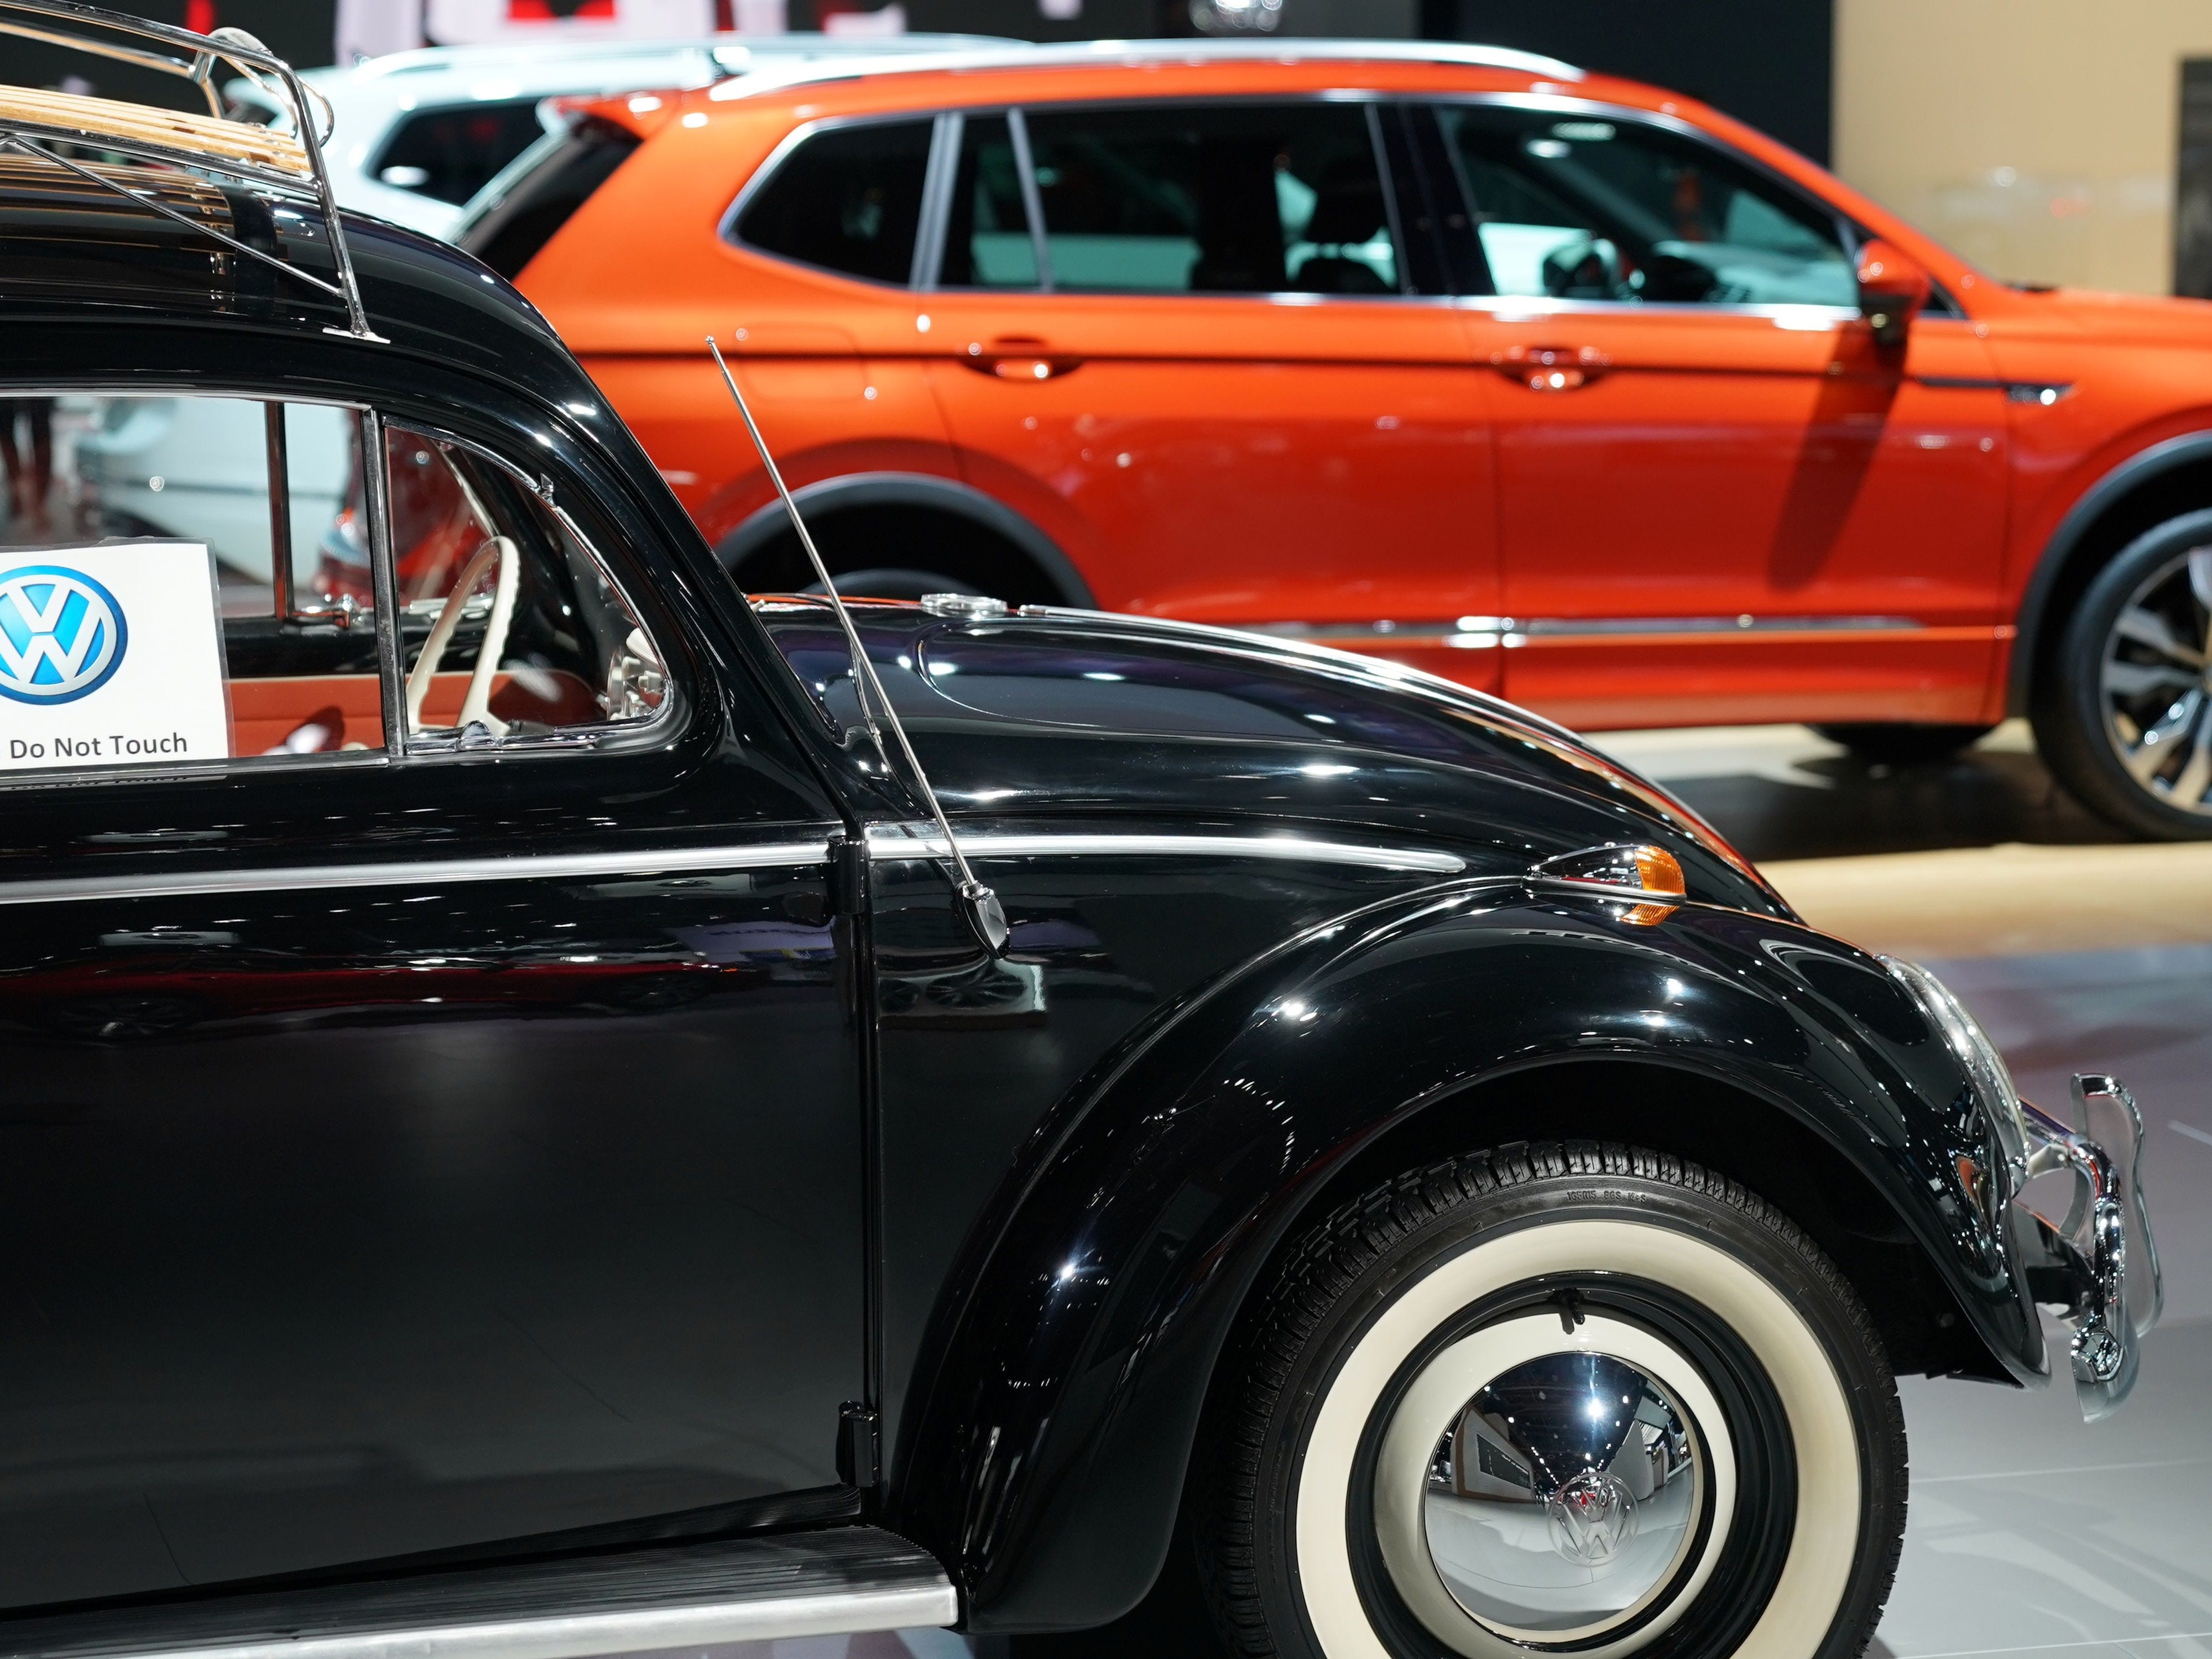 A 1964 VW Beetle is on display in the VW area.